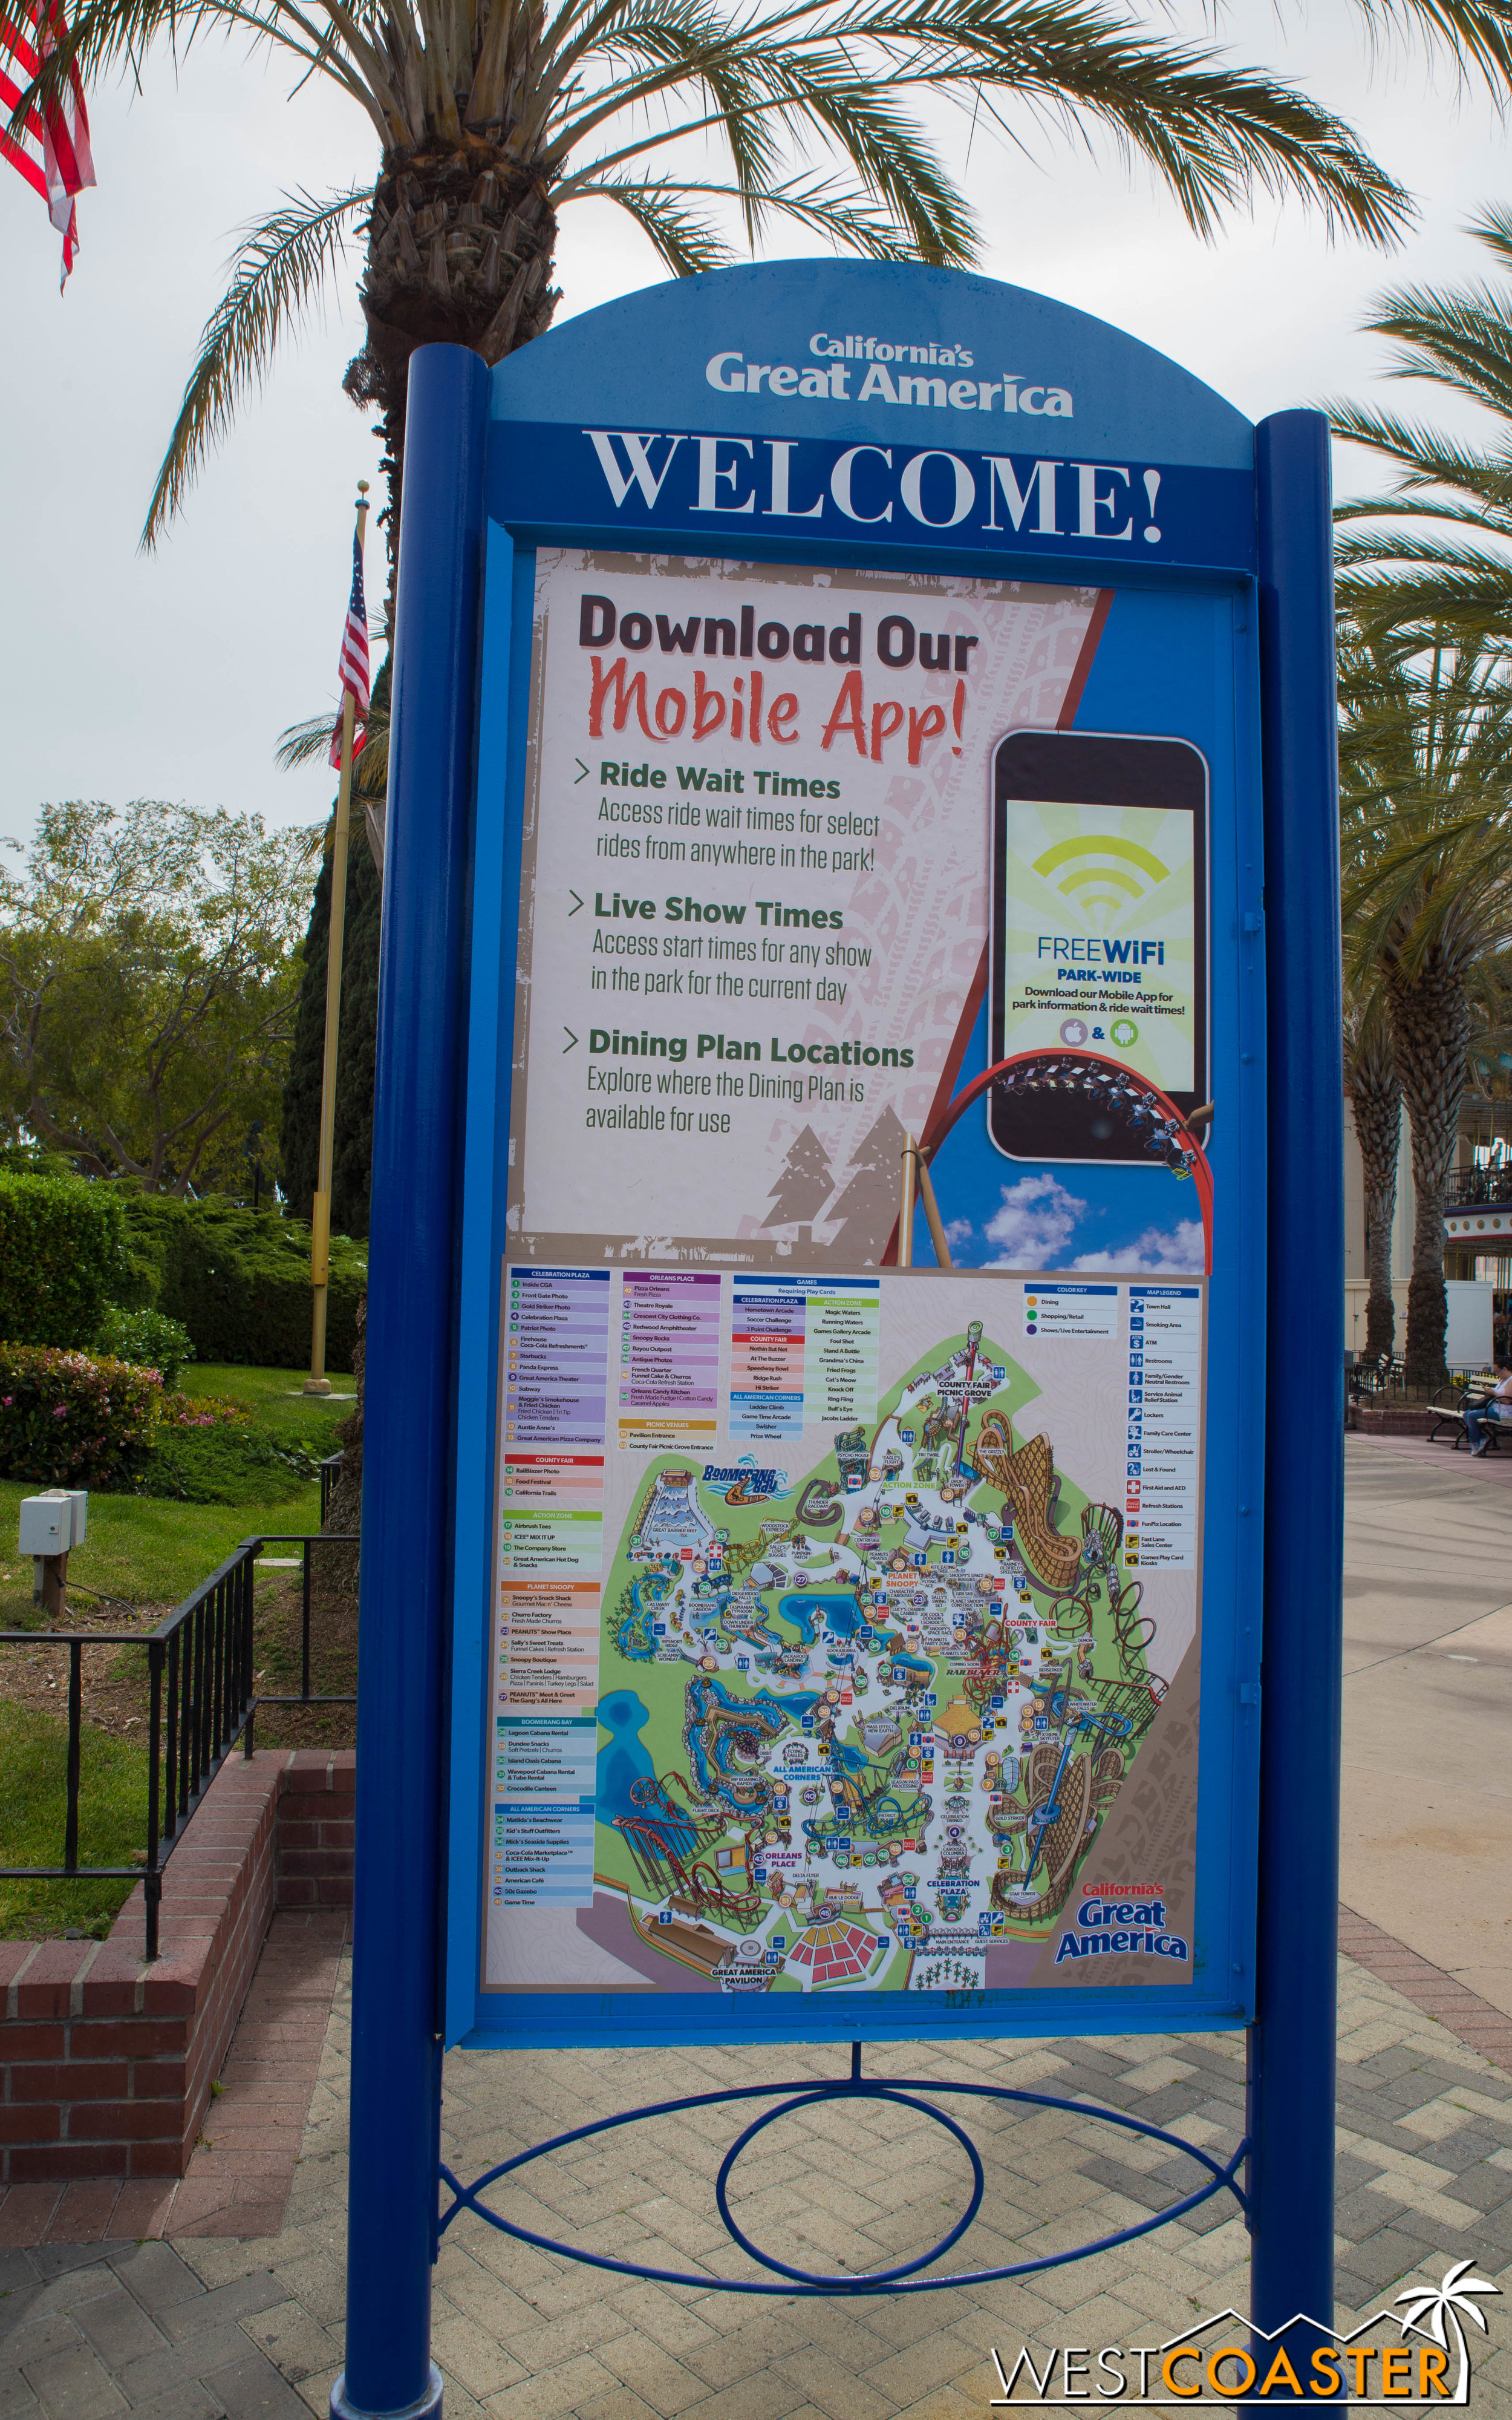 Pro-tip: CGA's really made a effort to improve guest experience. Their app is fantastic, and they PARK HAS WIFI (Take note, Disney California Adventure)